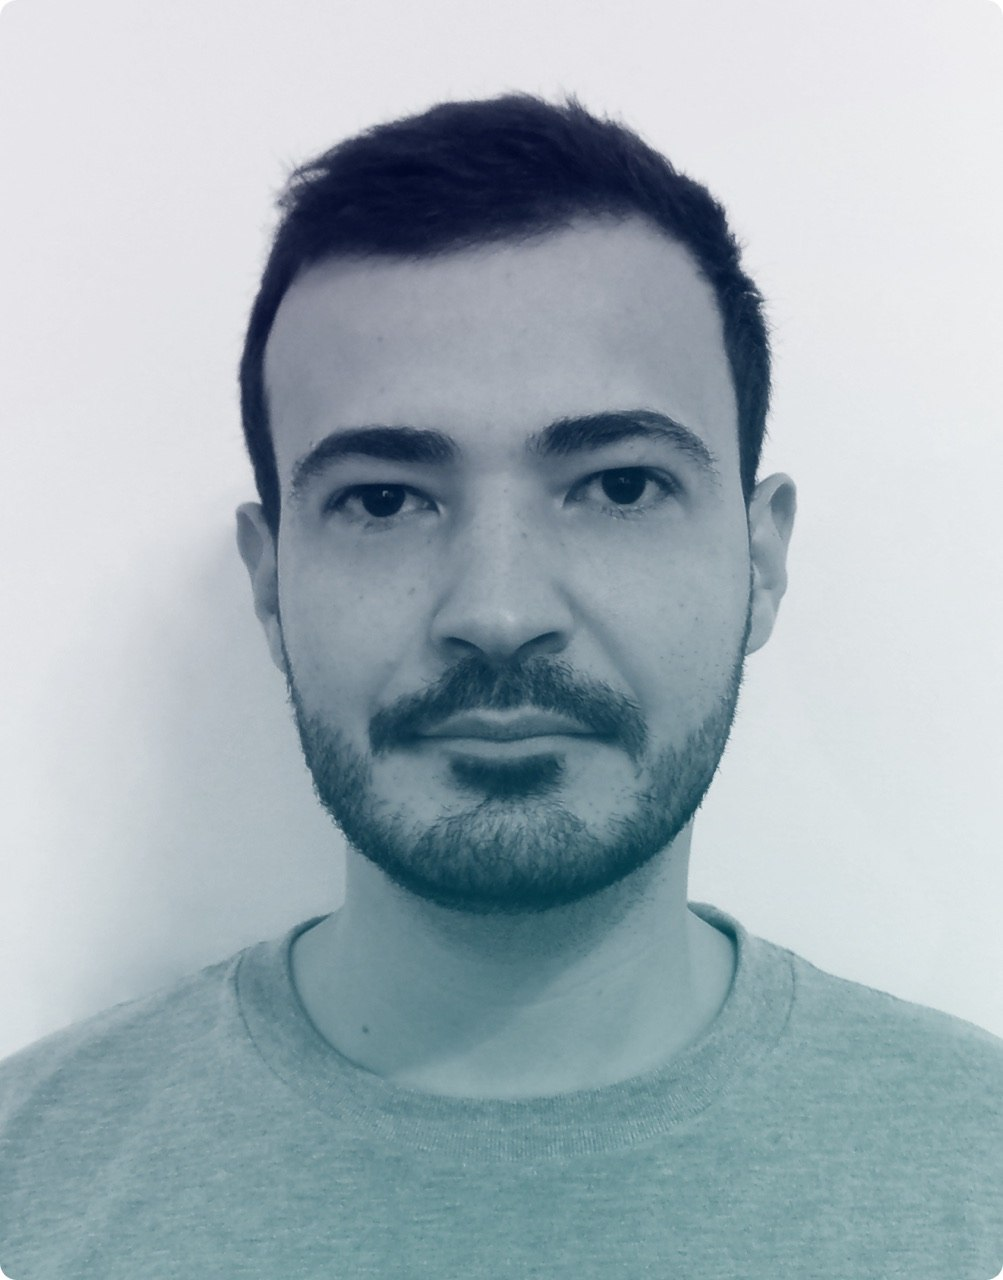 Edouard Viguier  CEO  Édouard has been working in the blockchain space for 3 years, supervising blockchain and cybersecurity projects for major banking and industrial clients. He's also Deputy Director of the Homeland Security Committee, from the French leading youth think tank on security and defence matters. He graduated from France's top law school, and is specialized in blockchain technologies, cyber security and defence law. He is the instigator of the Galion project.